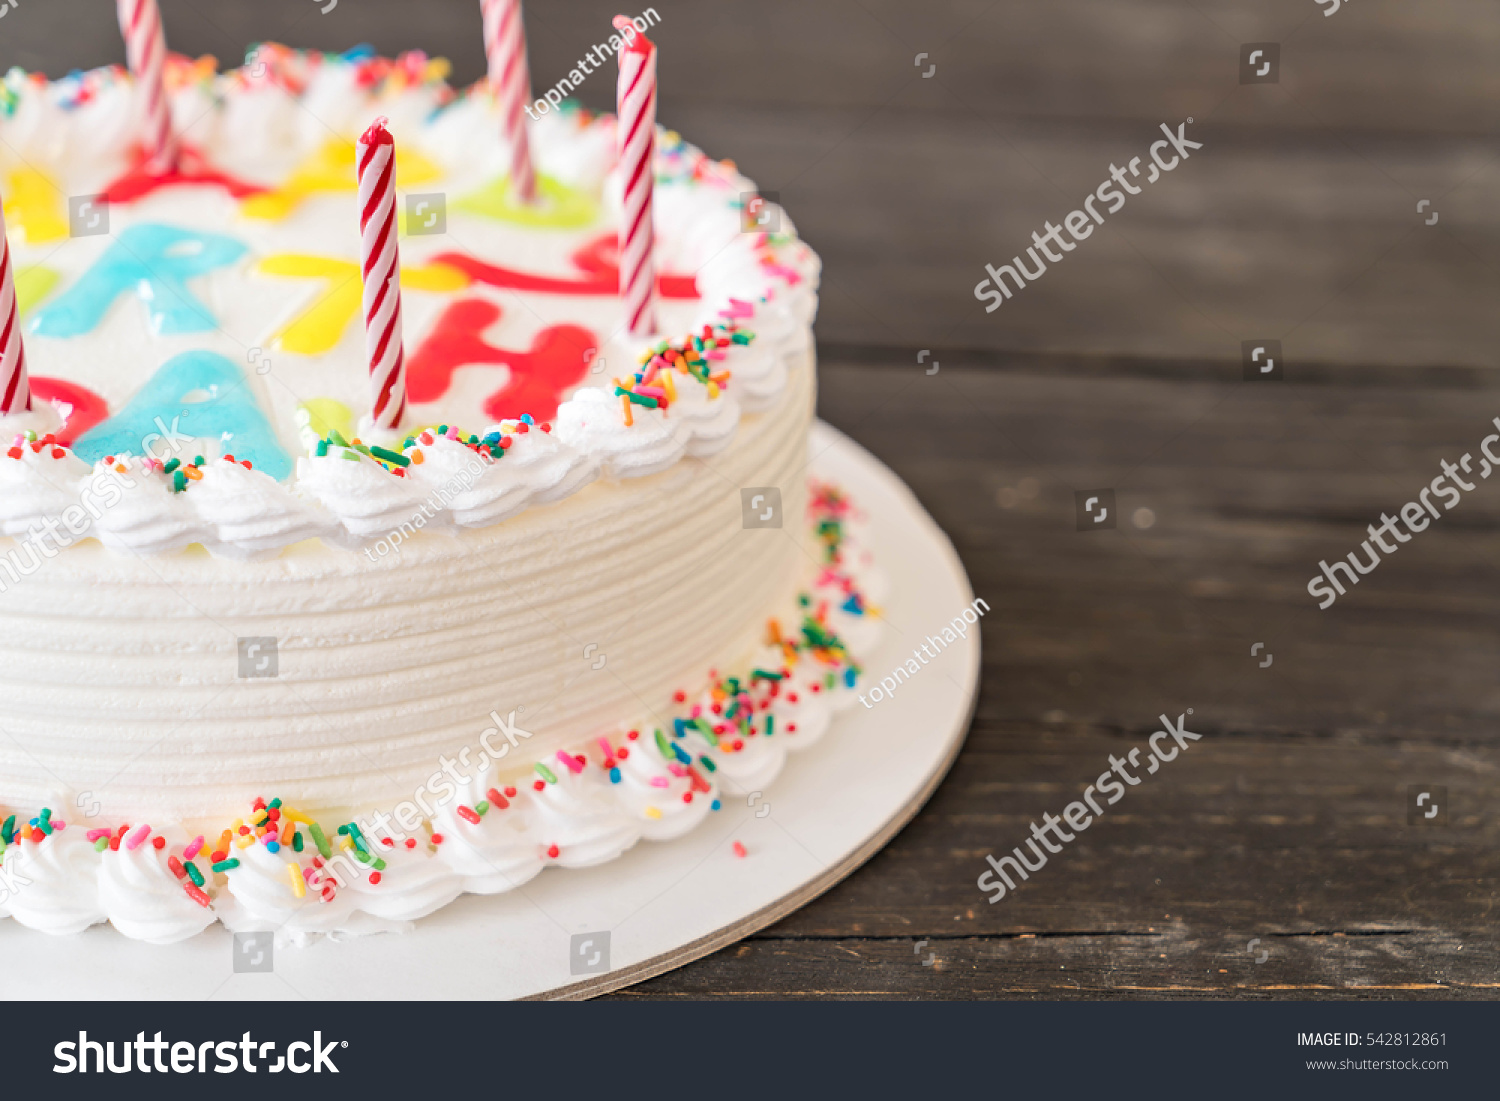 Happy Birthday Cake On Table Stock Photo Edit Now 542812861